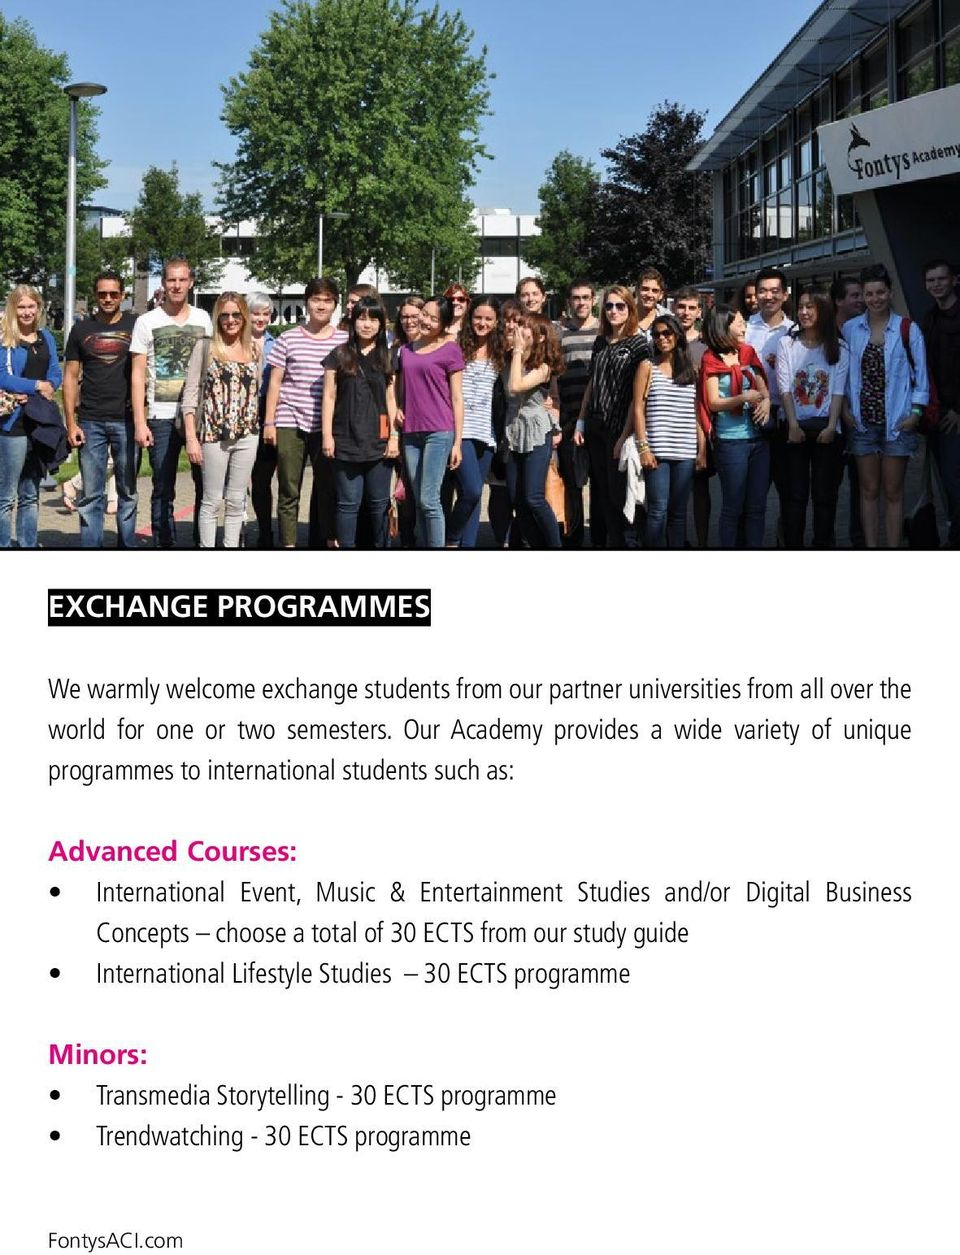 Our Academy provides a wide variety of unique programmes to international students such as: Advanced Courses: International